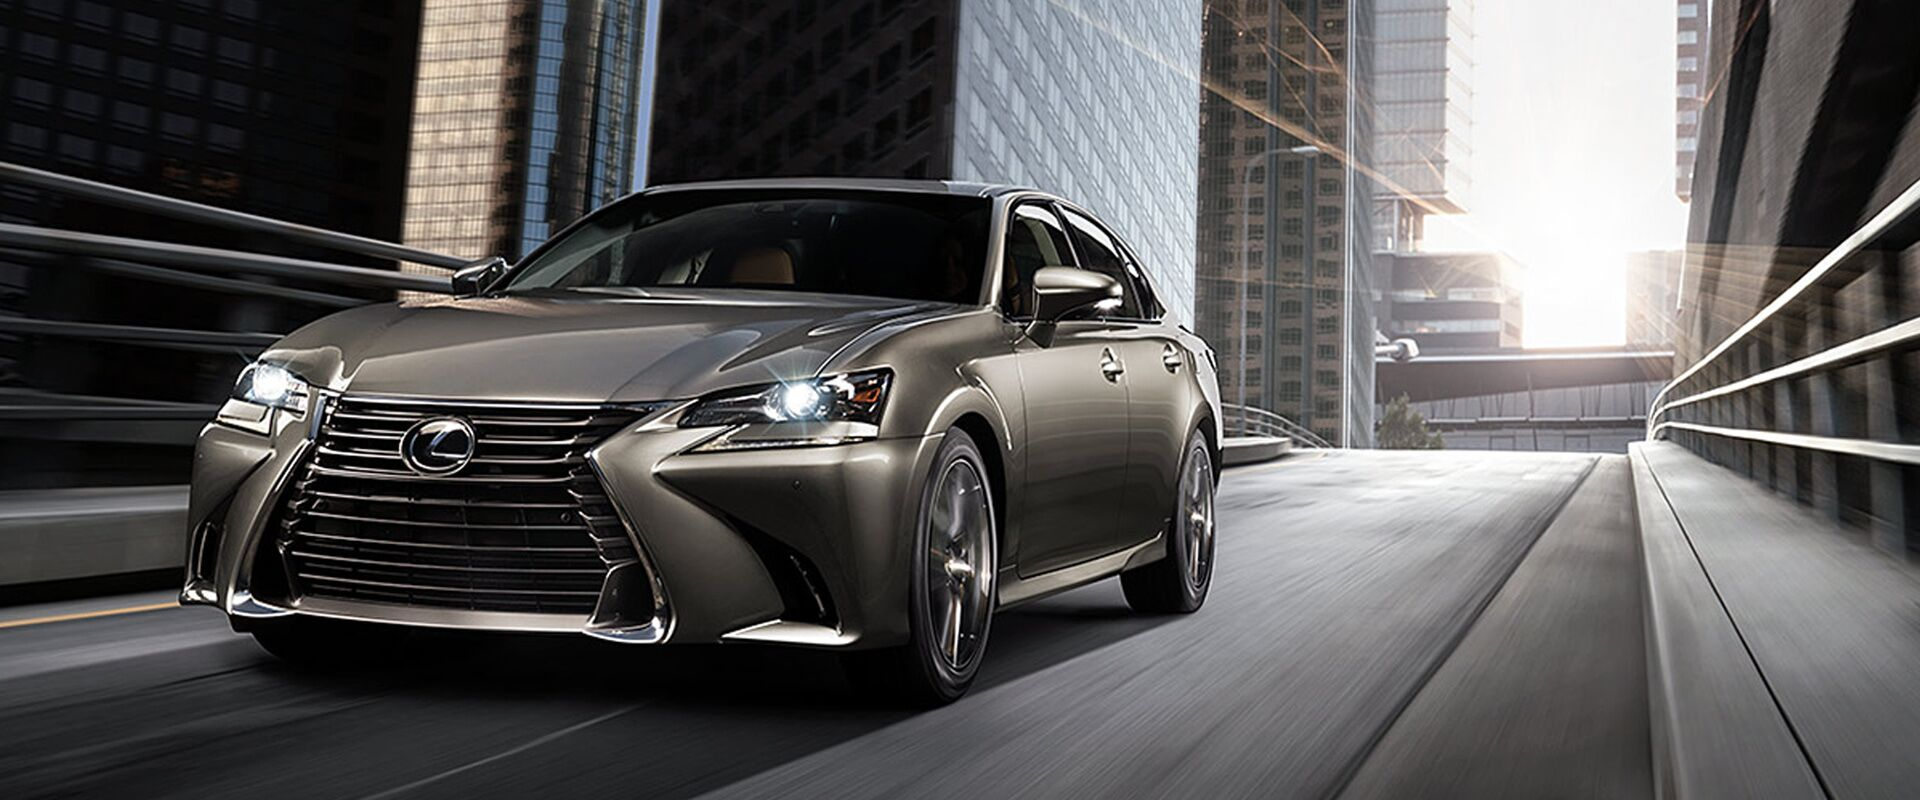 Used Lexus at Evo Motors in Seffner, FL